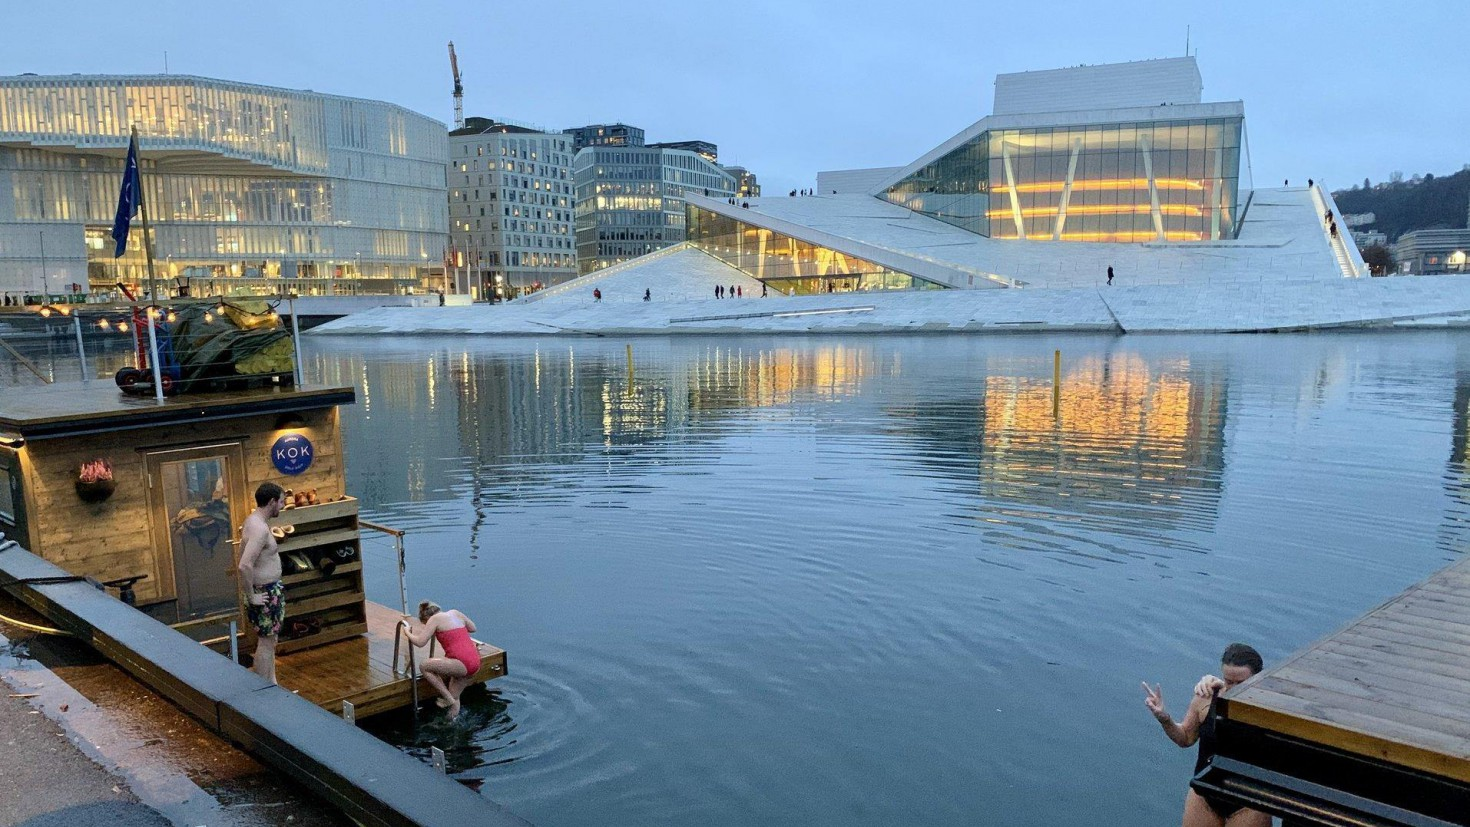 Oslo city centre in Mid-December: Temperatures above freezing and no snow in sight. Photo by Iselin Rønningsbakk / CICERO.